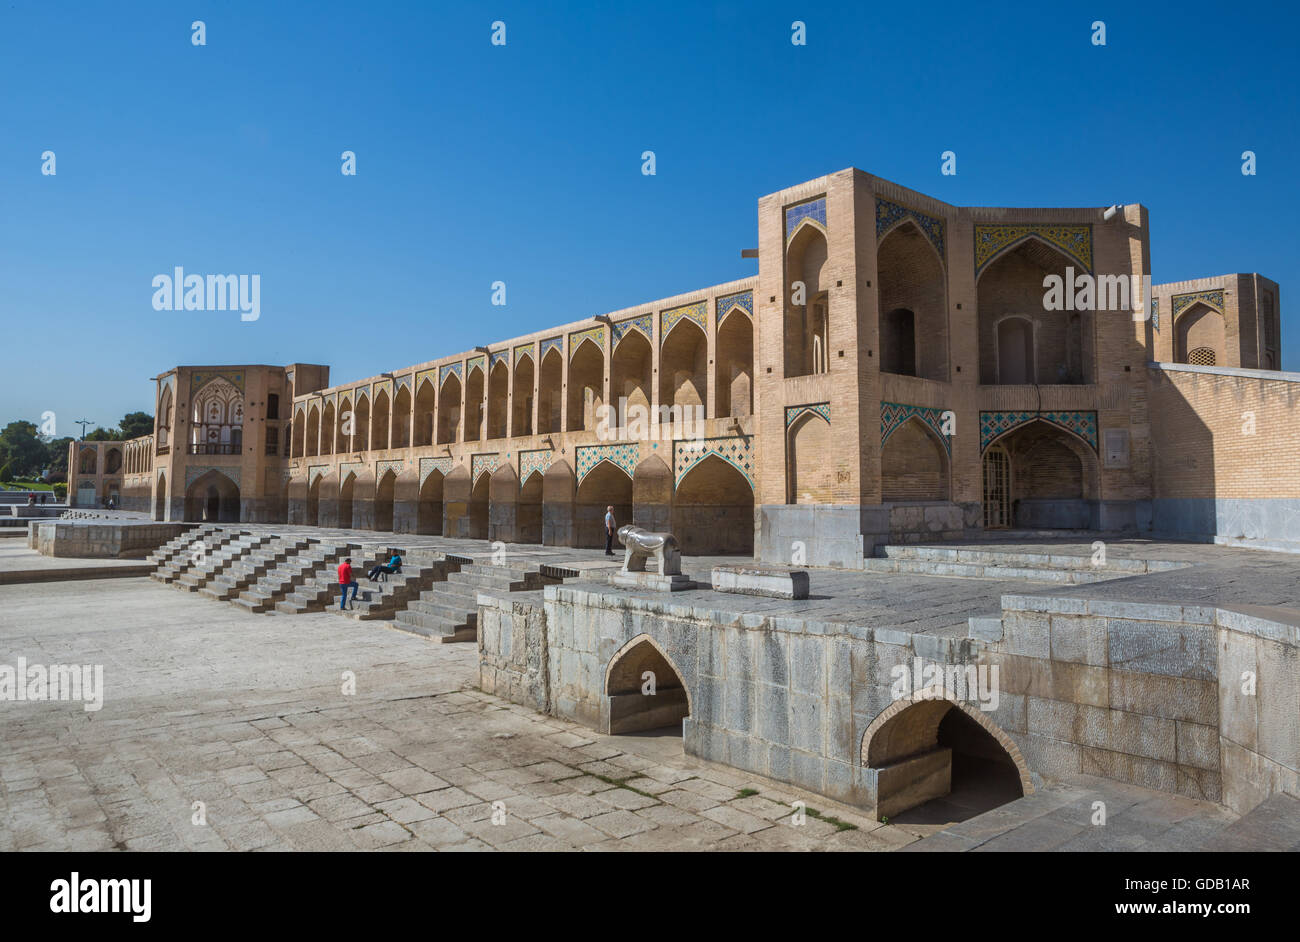 Iran,Esfahan City,Si-o-Seh Bridge,UNESCO,world heritage, - Stock Image